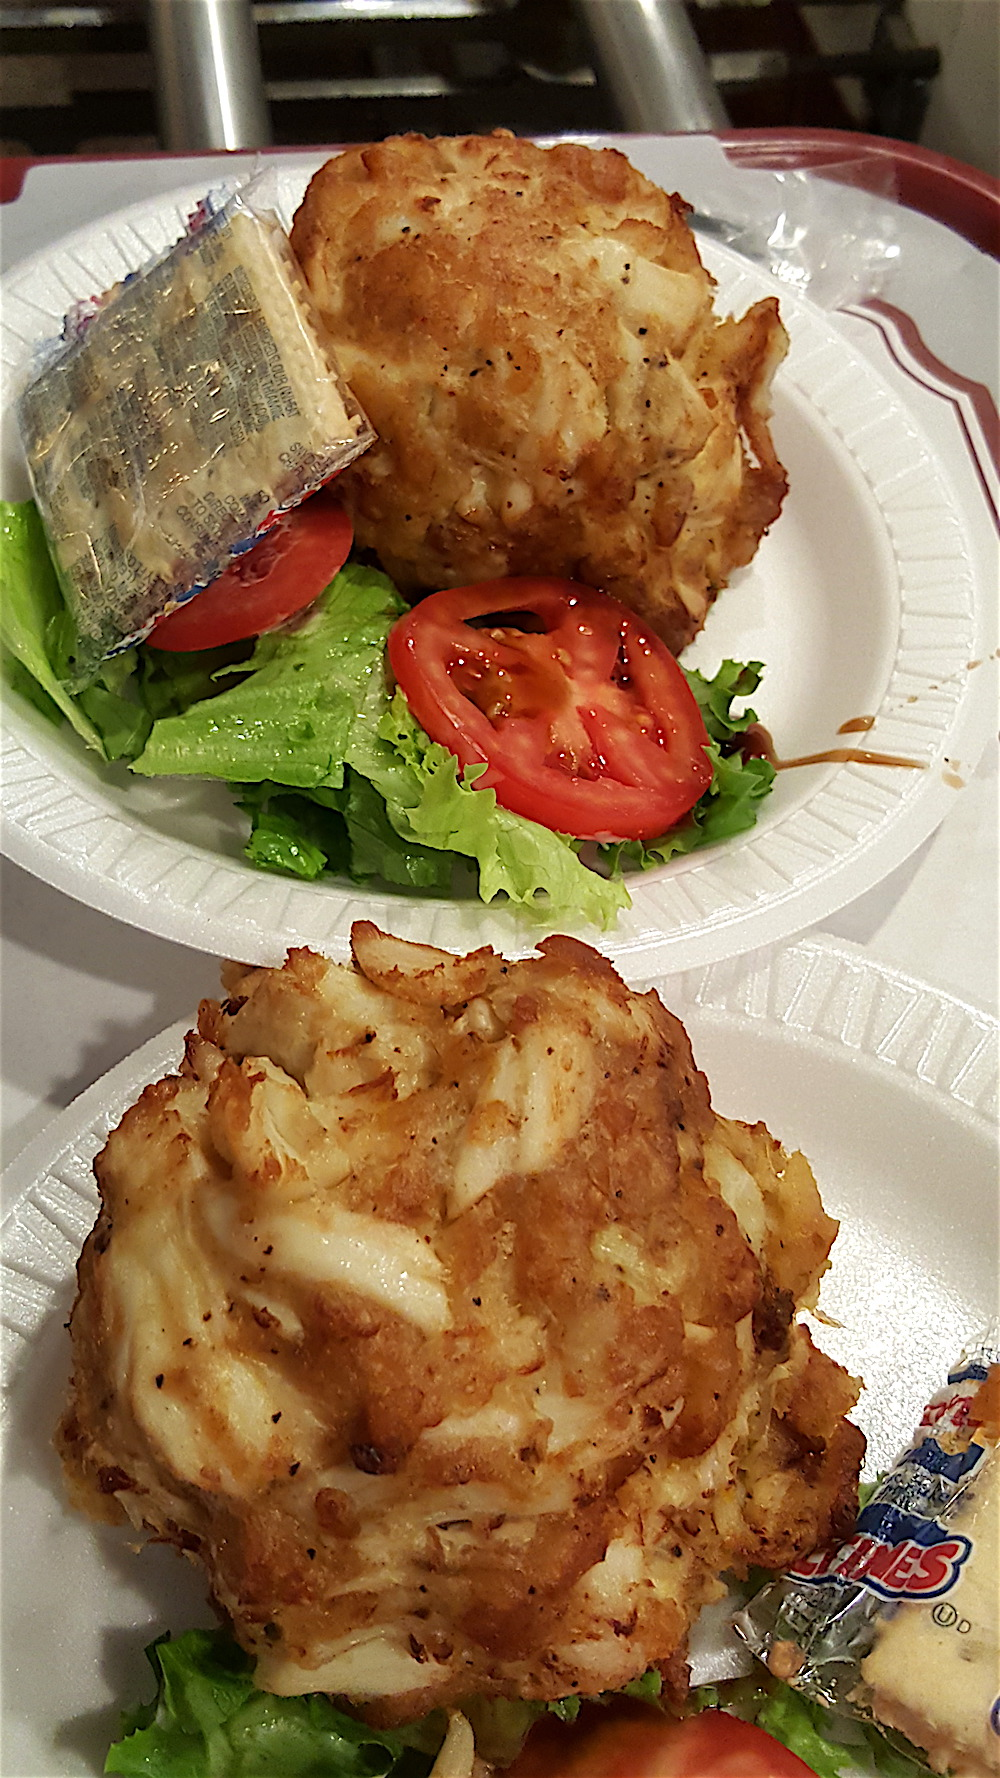 Crab cakes from Faidley Seafood. Yum.